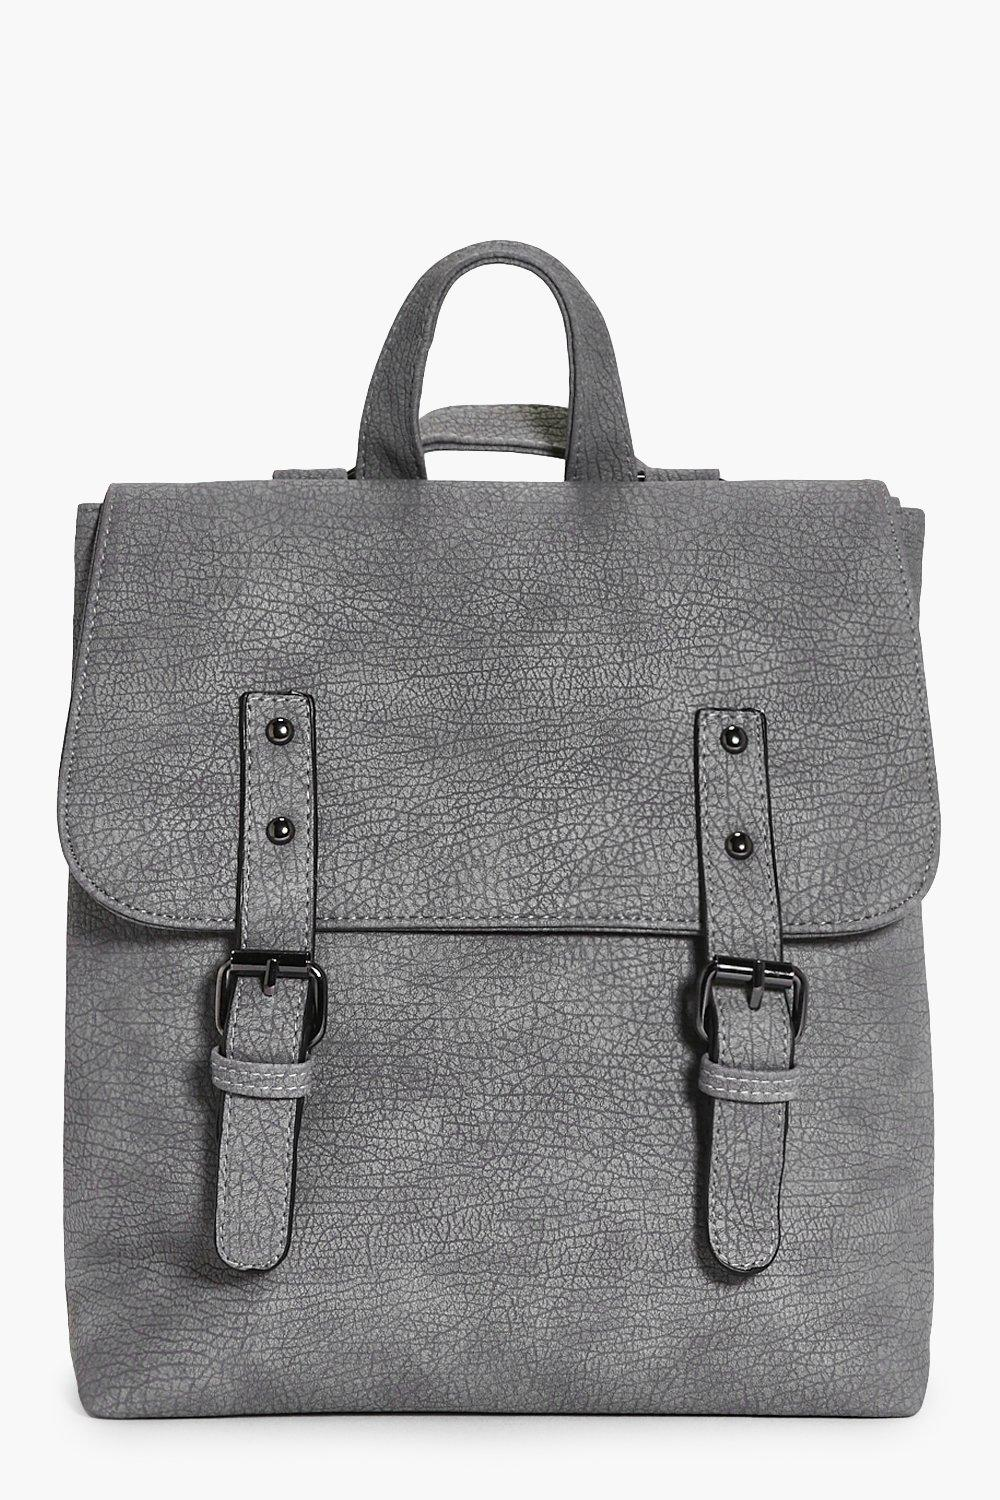 Buckle Detail Structured Backpack - grey - Keira B